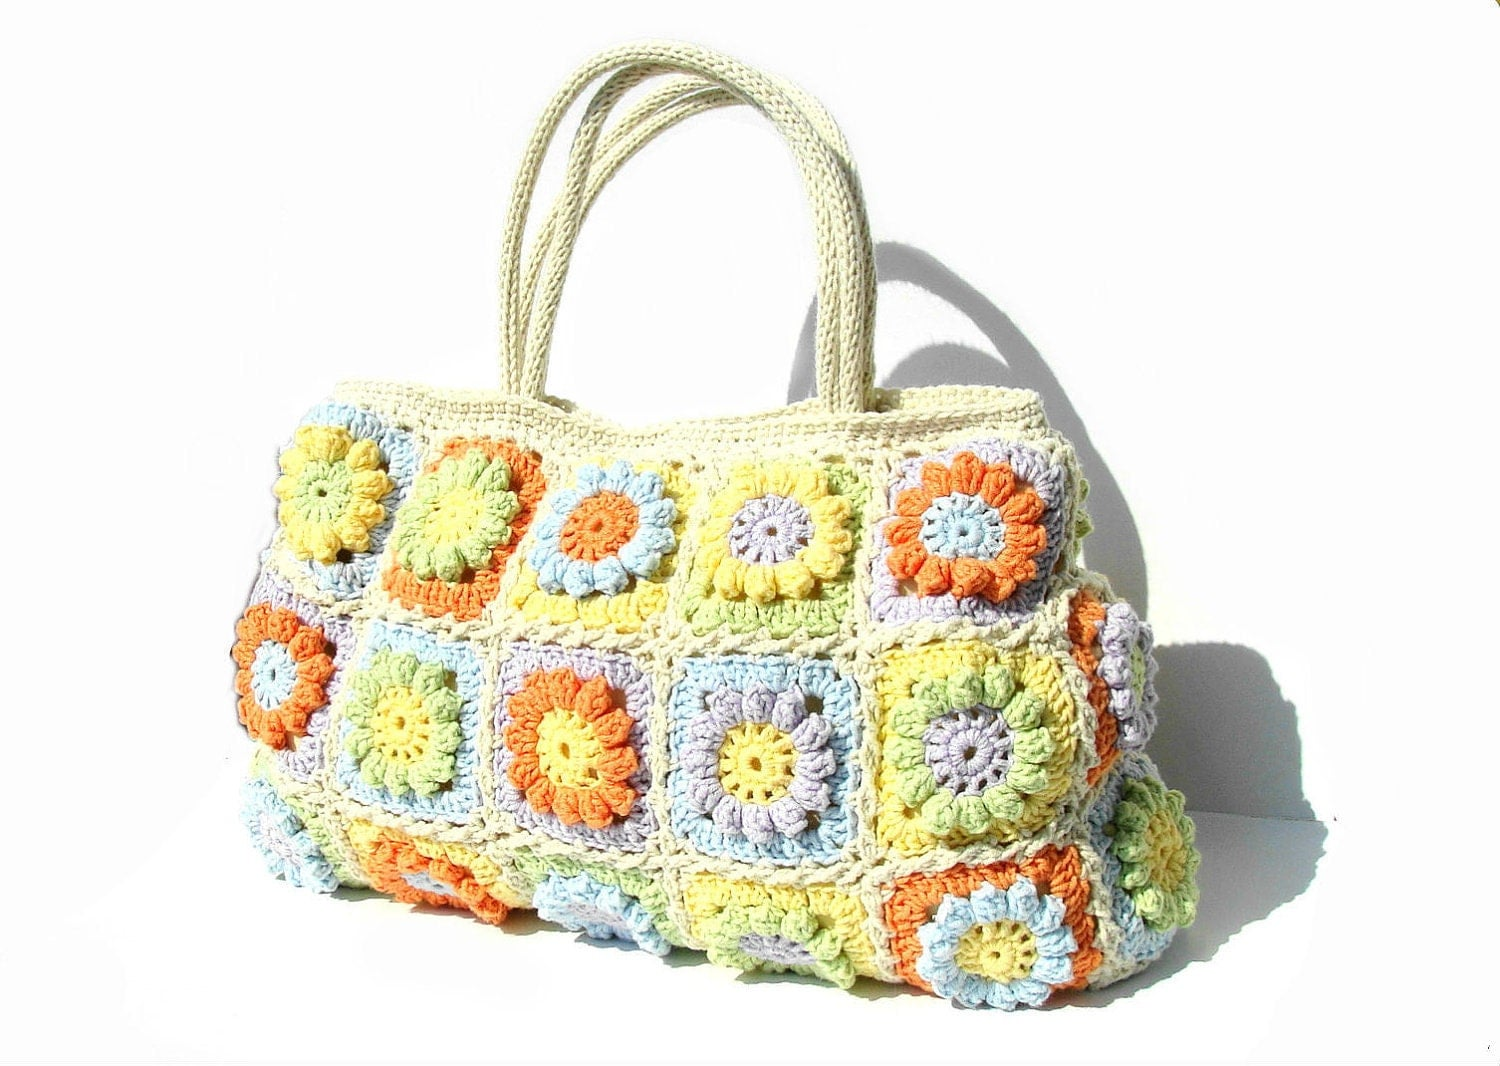 Designer Crochet Handbags : Flowers summer bag crochet handbag crochet bag in by zolayka